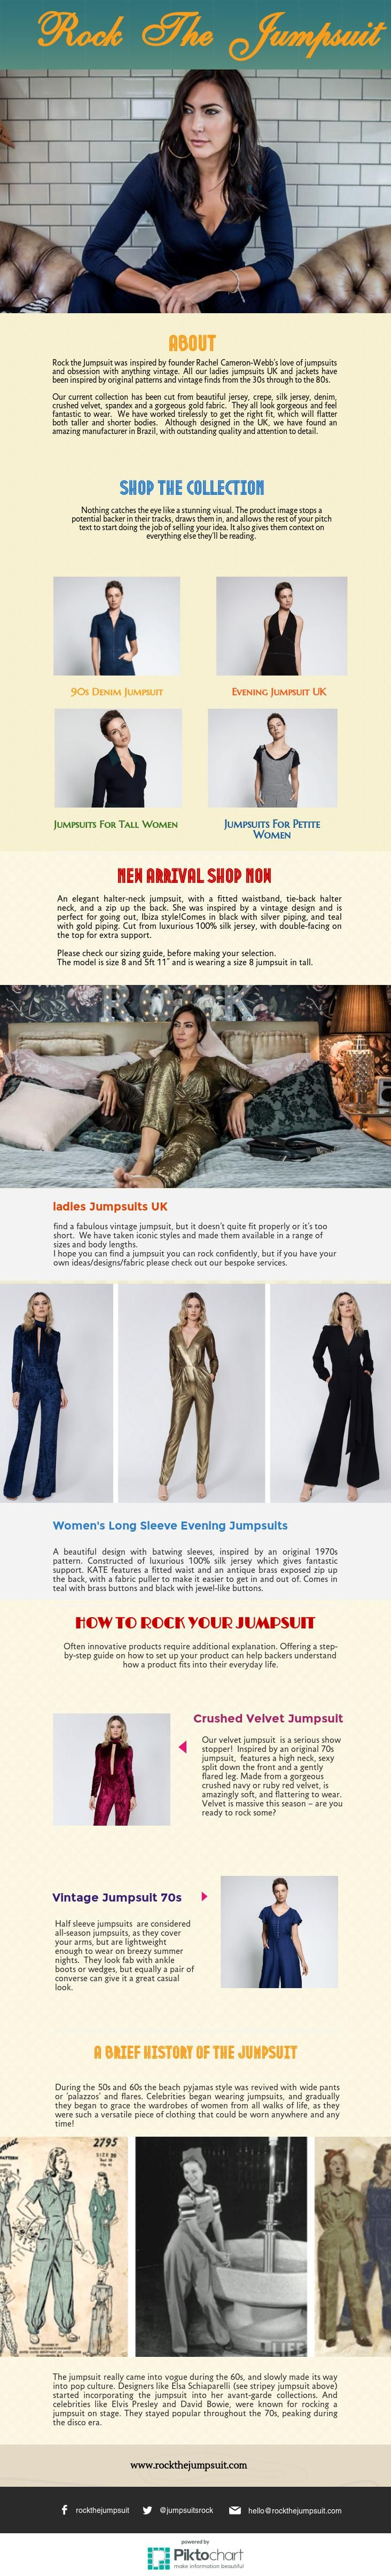 Rock The Jumpsuit Add a blazer or jacket if its cold, or if you want a more professional look in Ladies Jumpsuits UK . Fitted denim and leather jackets can also look very cool.So for women who are tired of the usual jeans & t-shirt or summer dresses, a jumpsuit is a great alternative. It is a multipurpose and versatile fashion piece, ideal for almost any occasion